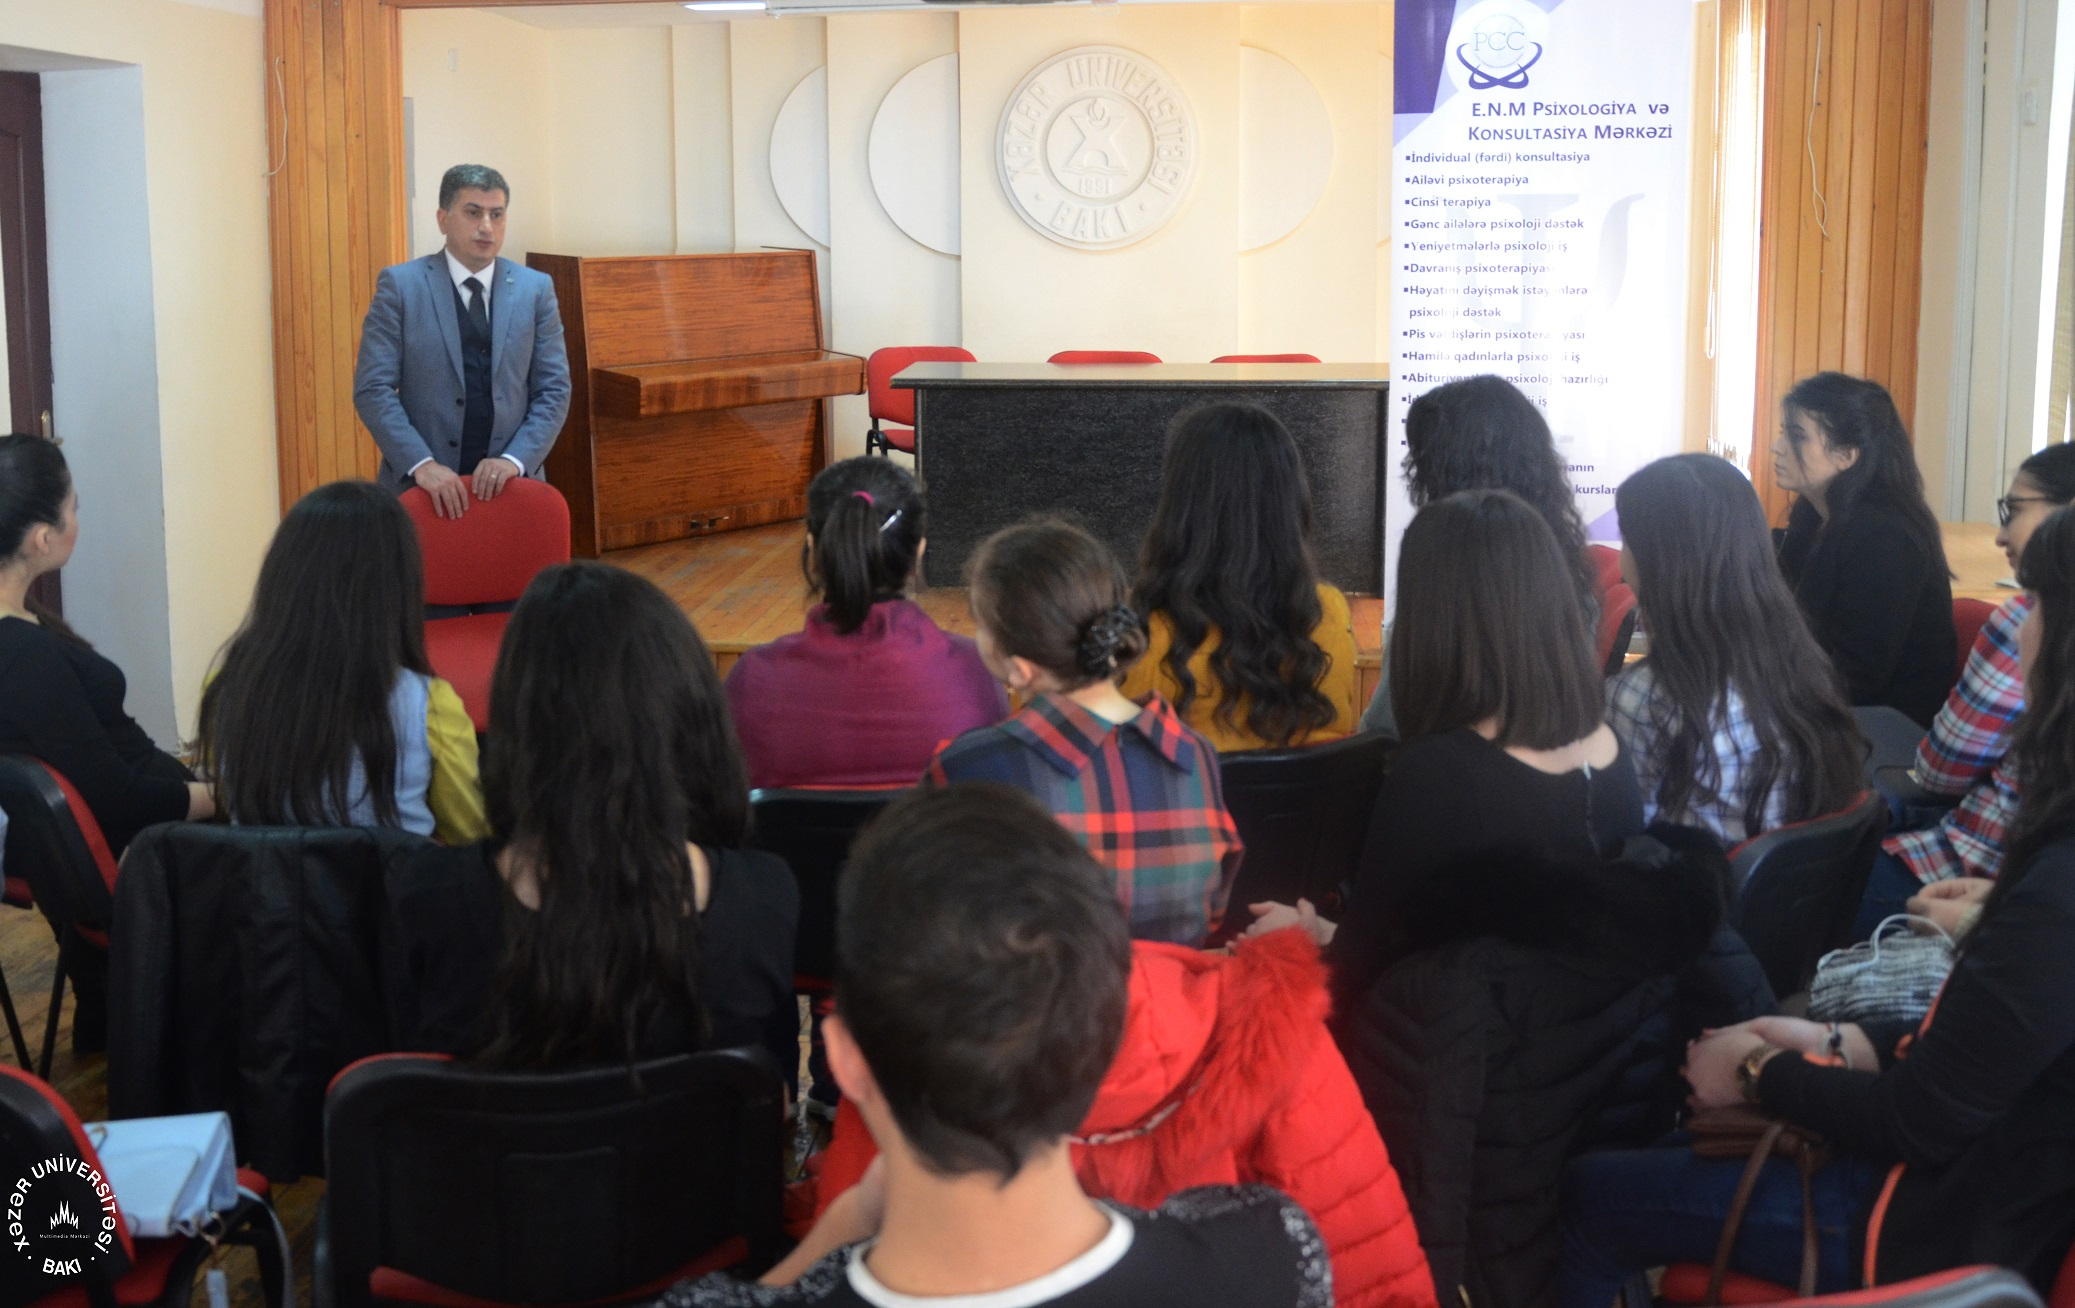 Seminar on Psychological Preparation for Exams